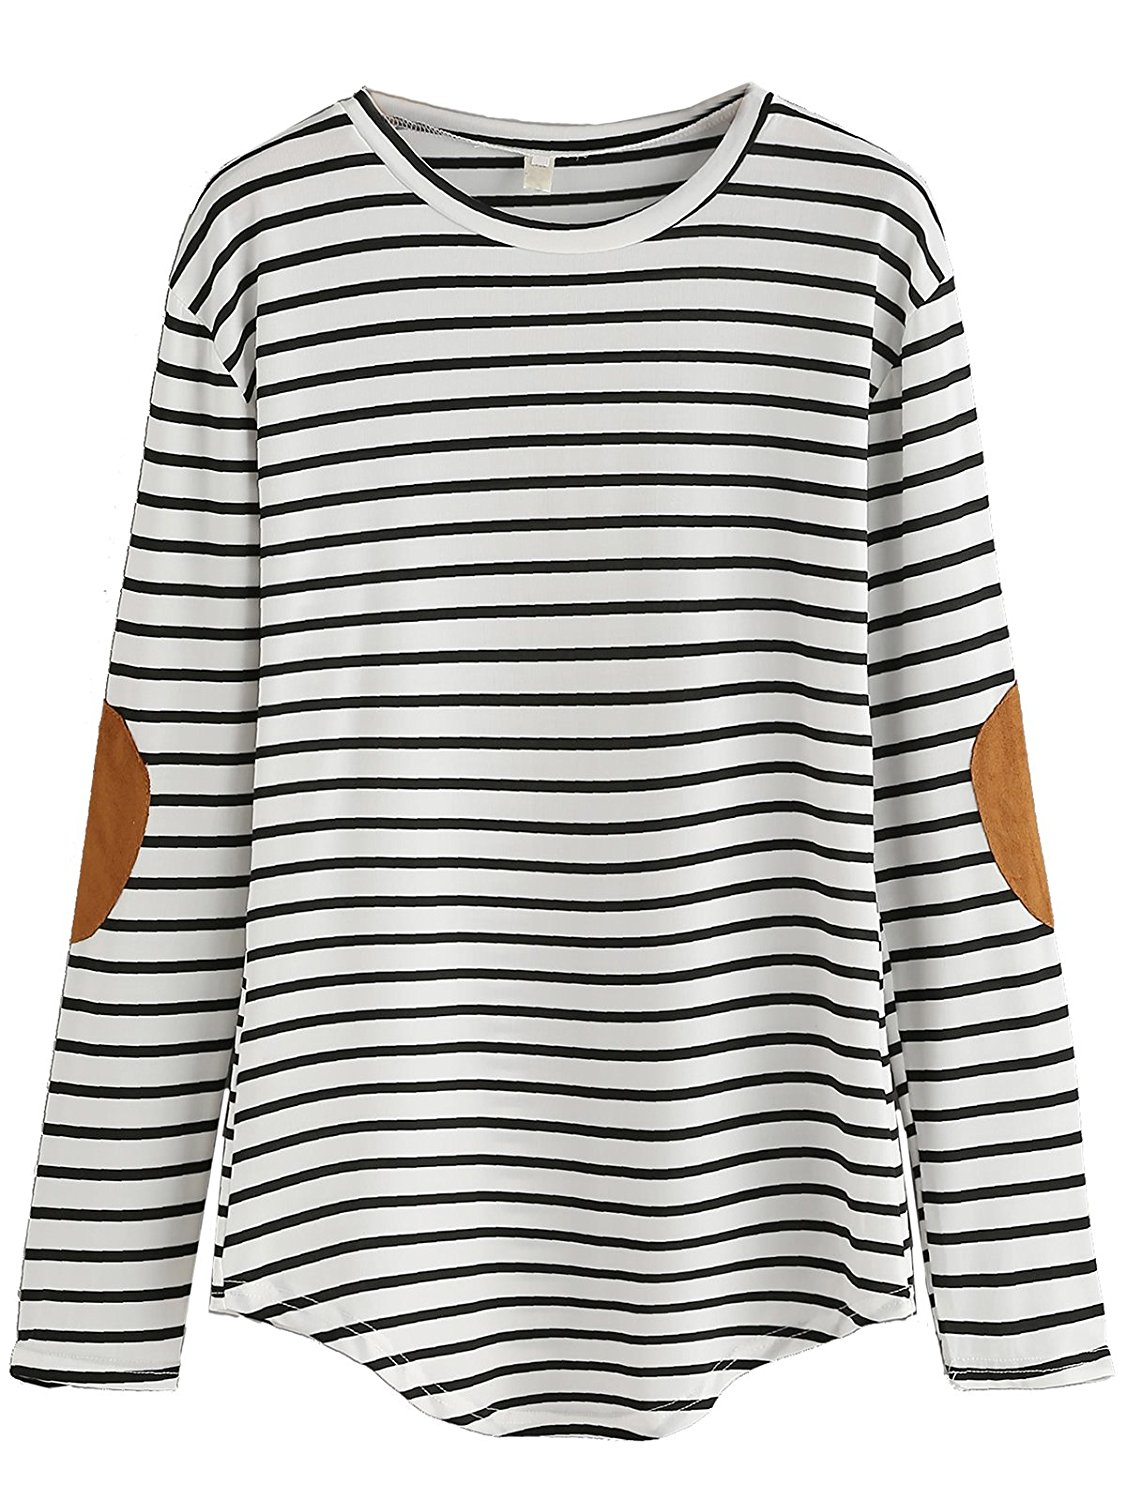 JJ-daidai Womens Round Neck Casual Red Stripes Long-Sleeved T-Shirt